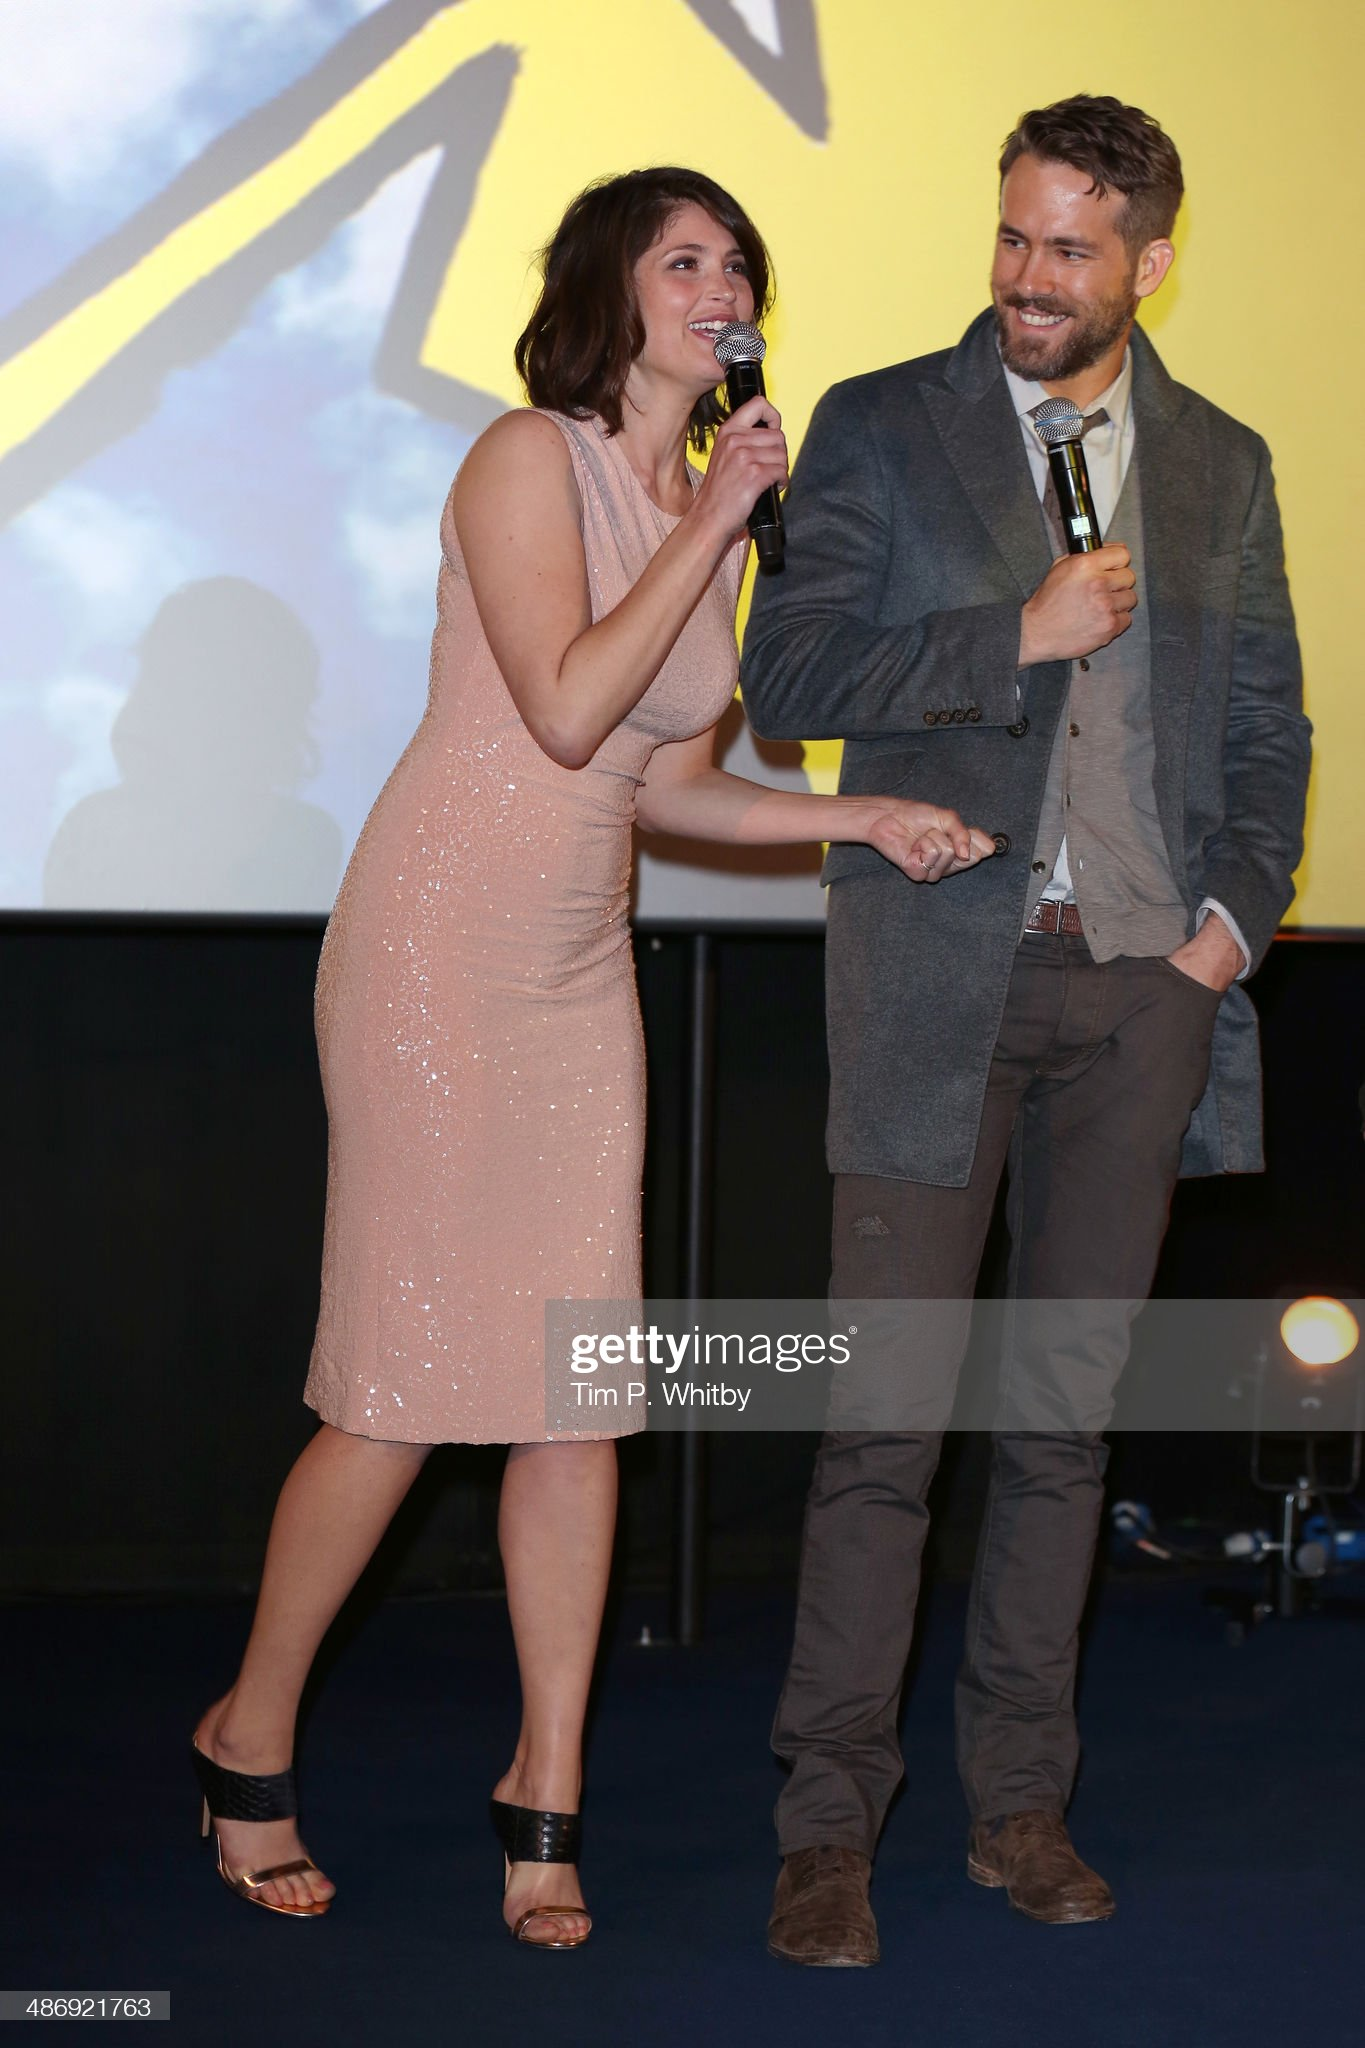 actors-gemma-arterton-and-ryan-reynolds-attend-the-voices-screening-picture-id486921763